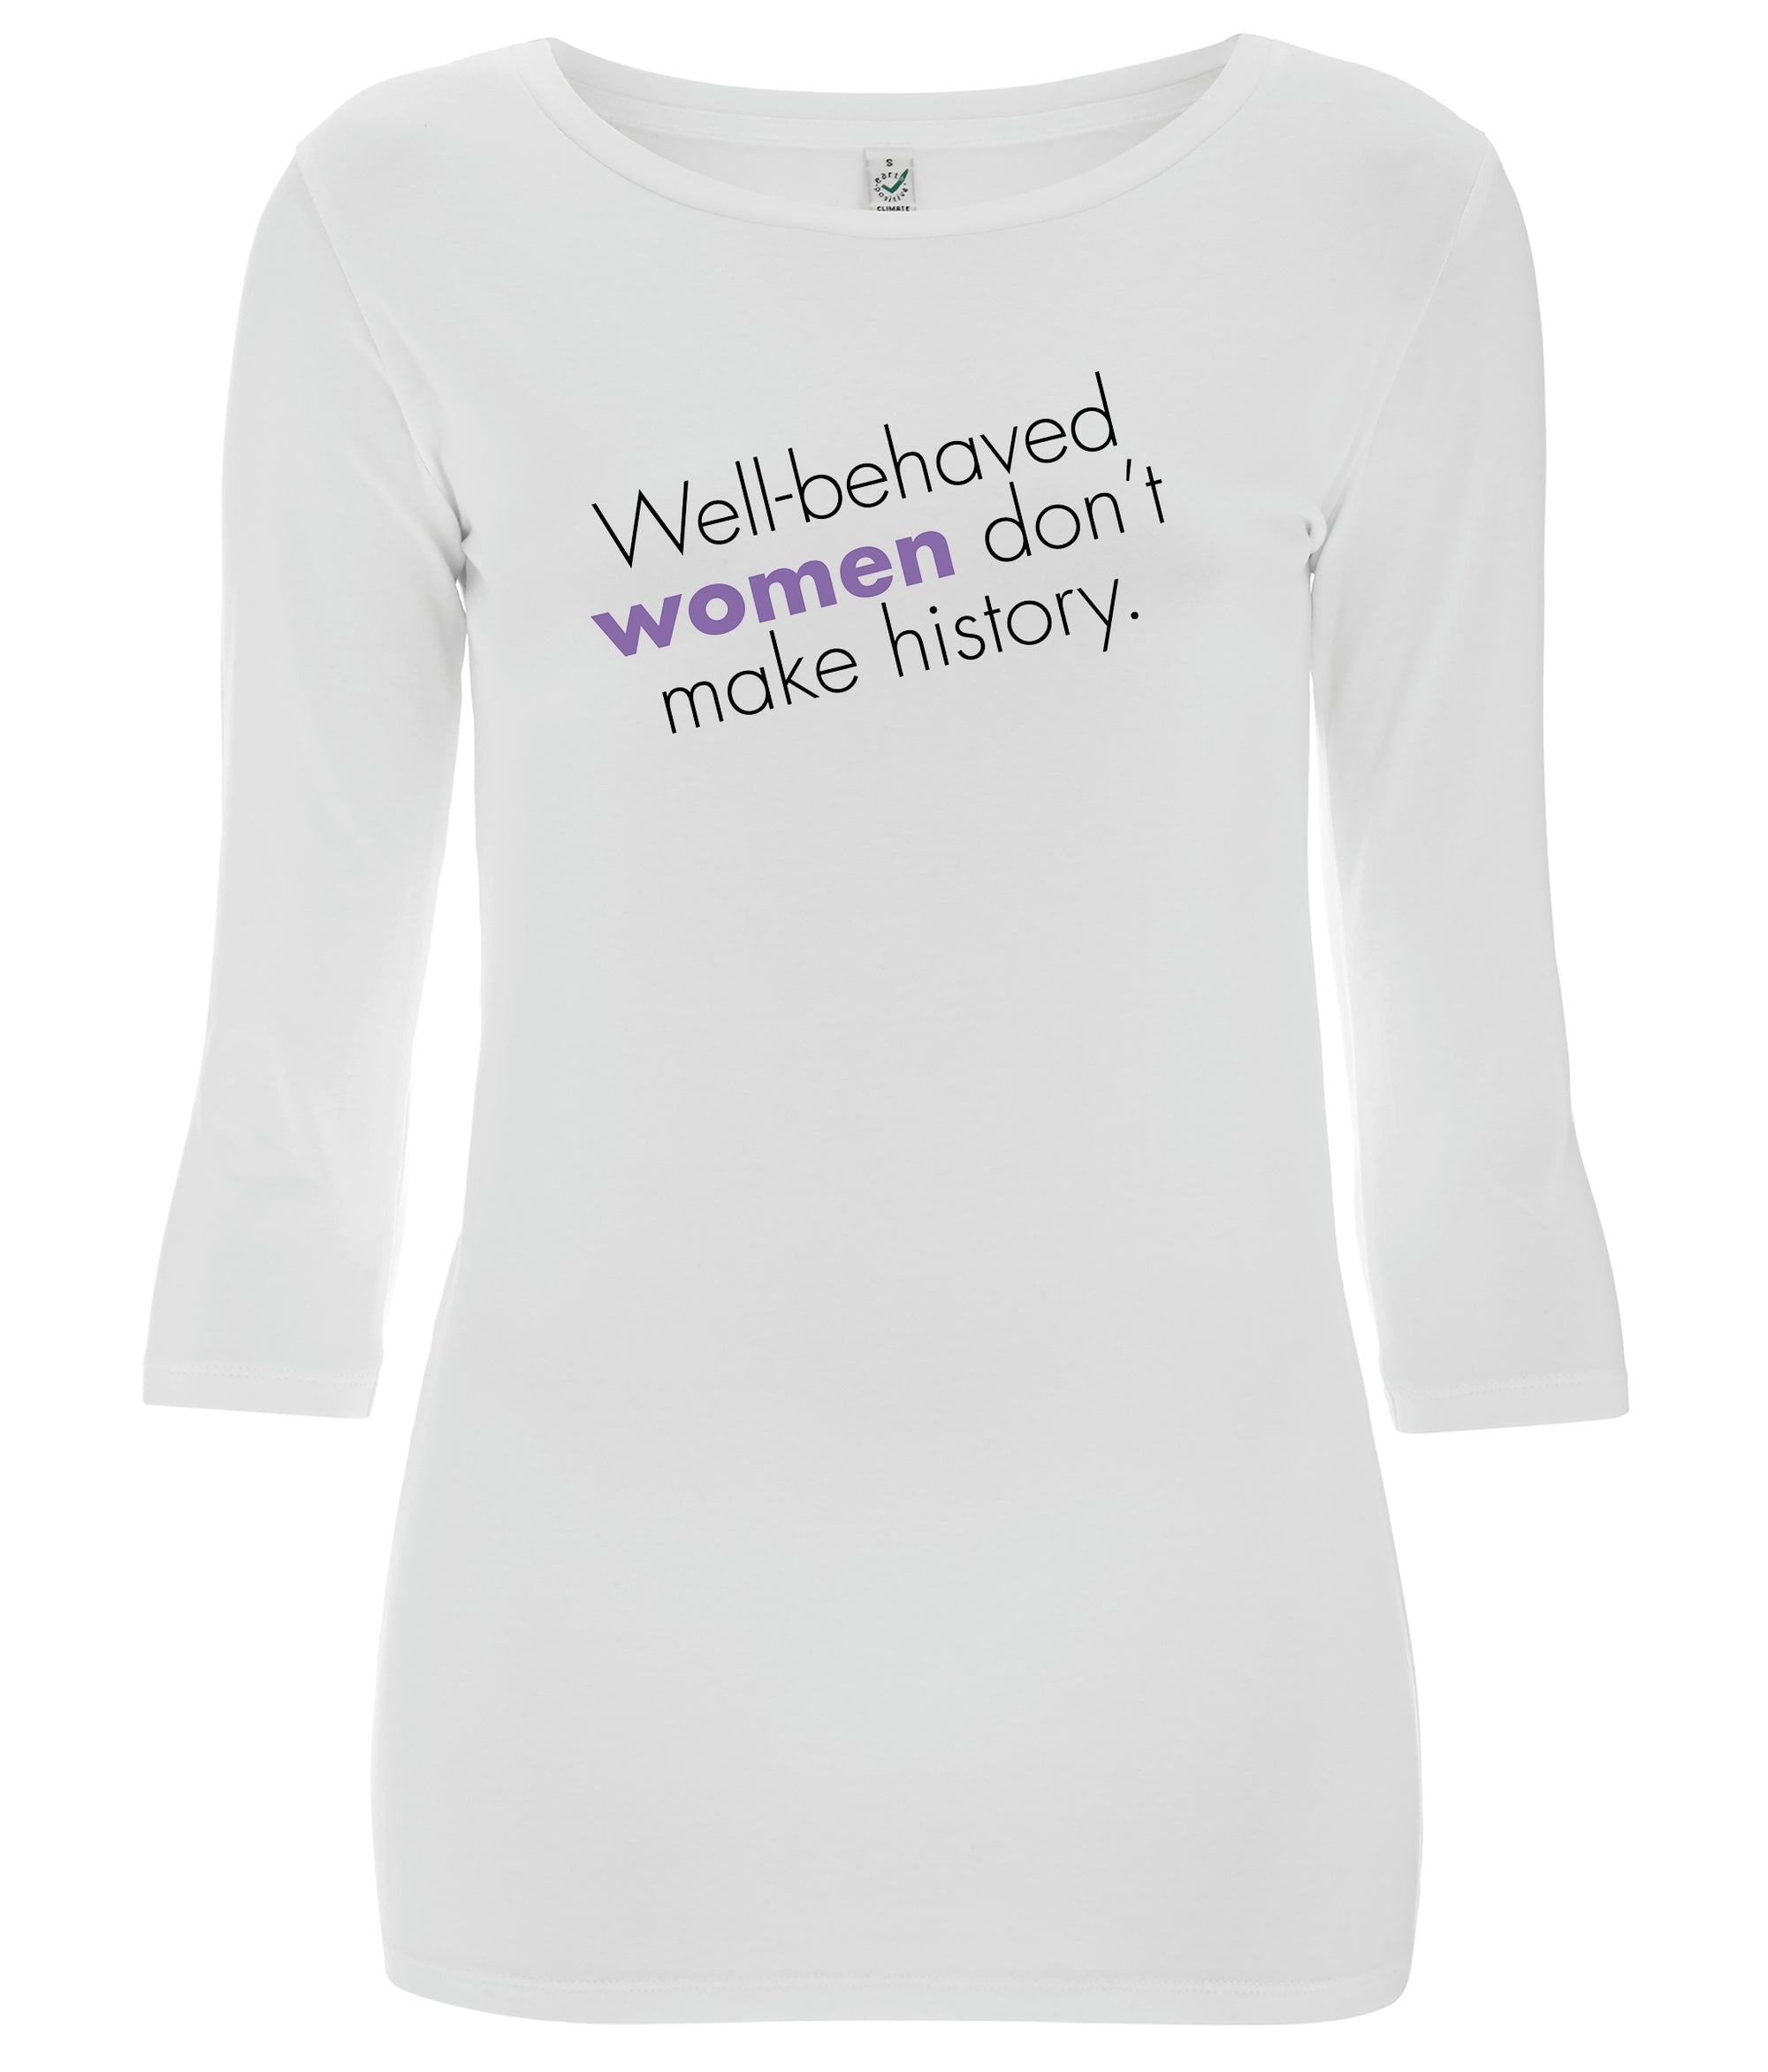 Well Behaved Women Don't Make History 3/4 Sleeve Organic Feminist T Shirt Black